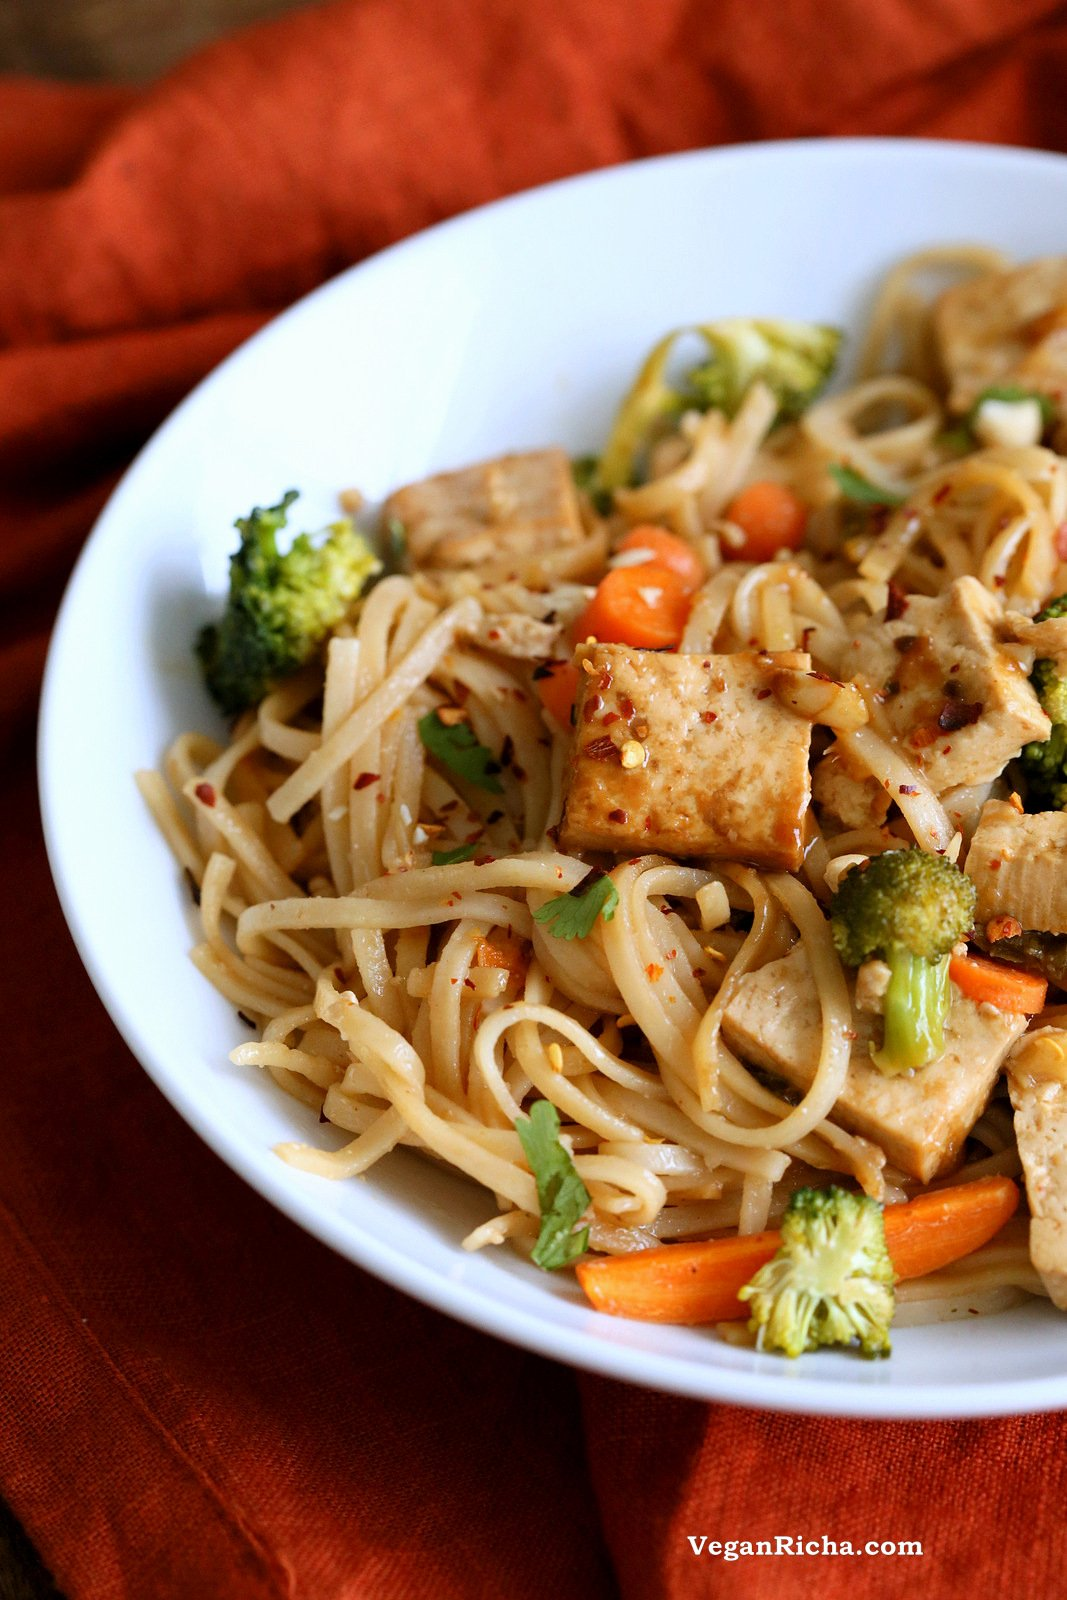 Tofu and Brown Rice Noodles in Hoisin Sauce. Vegan Hoisin Sauce Noodle Stir fry. Use more veggies to make tofu-free. Vegan Gluten-free Recipe | VeganRicha.com